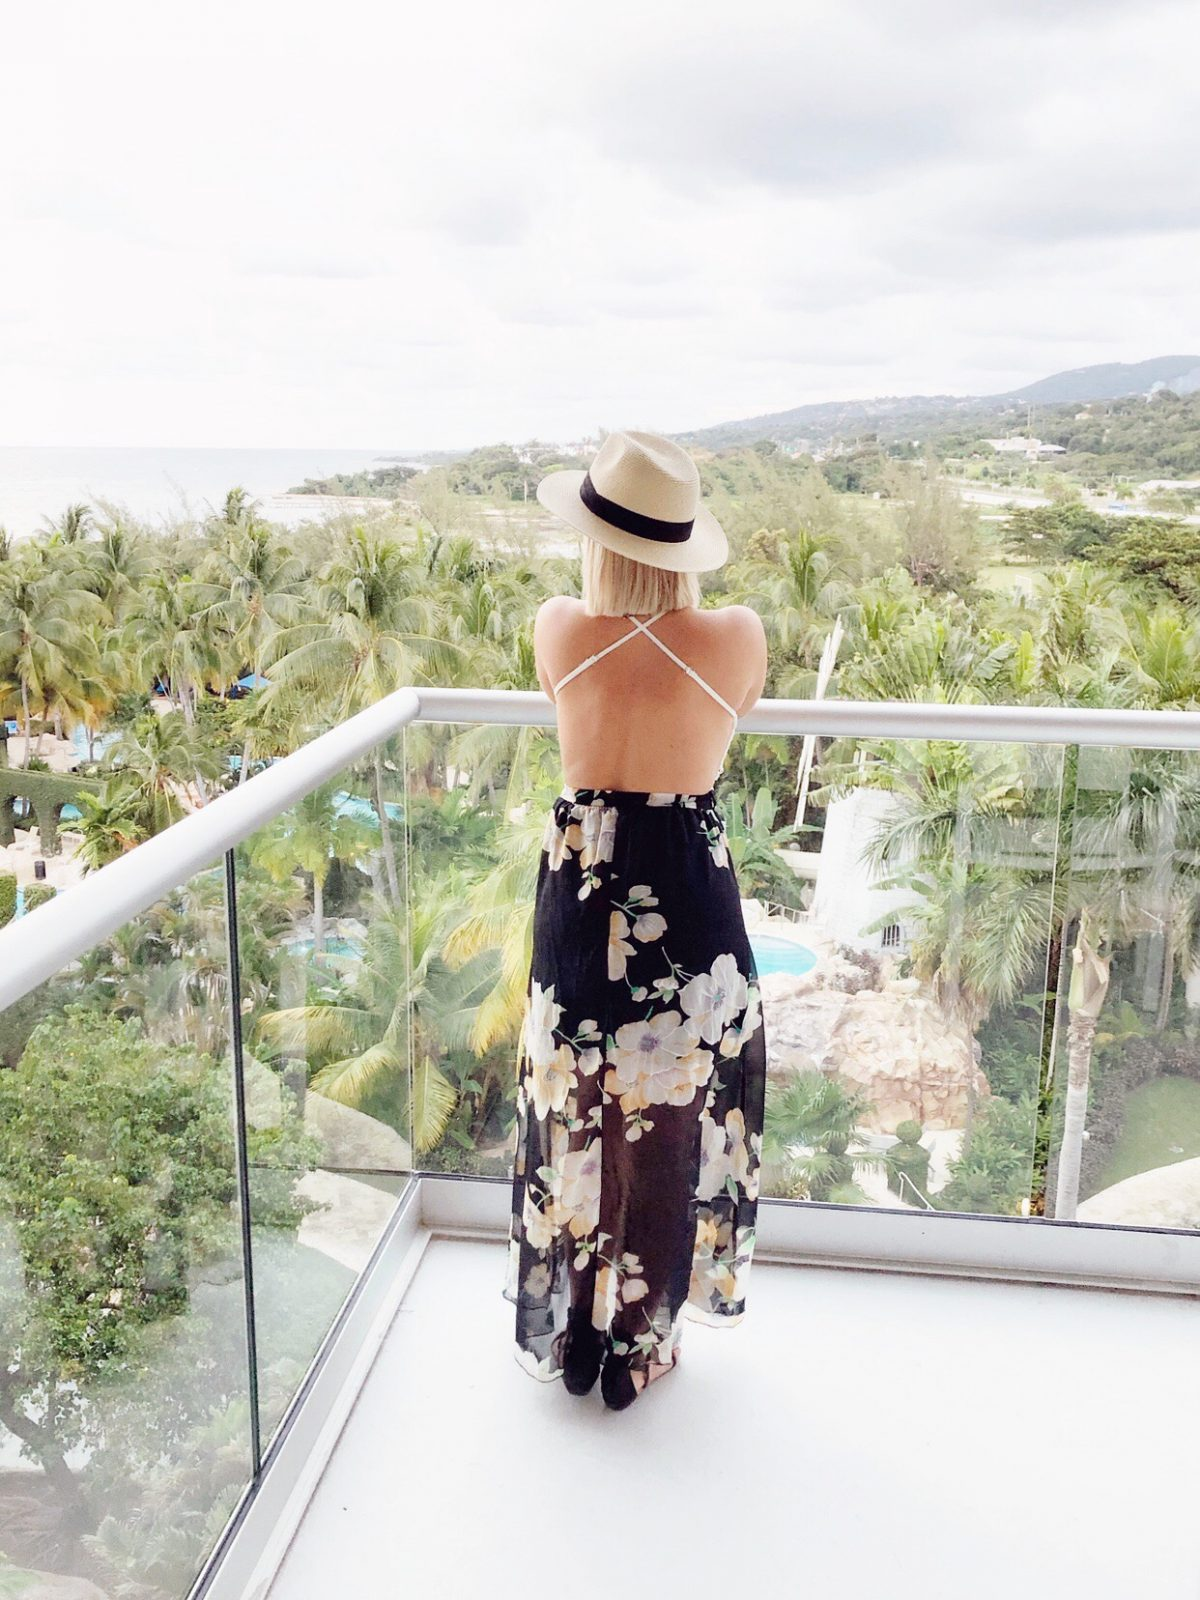 33e1e19f5c Home and lifestyle blogger Liz Fourez shares a collection of her favorite  affordable clothing and accessory